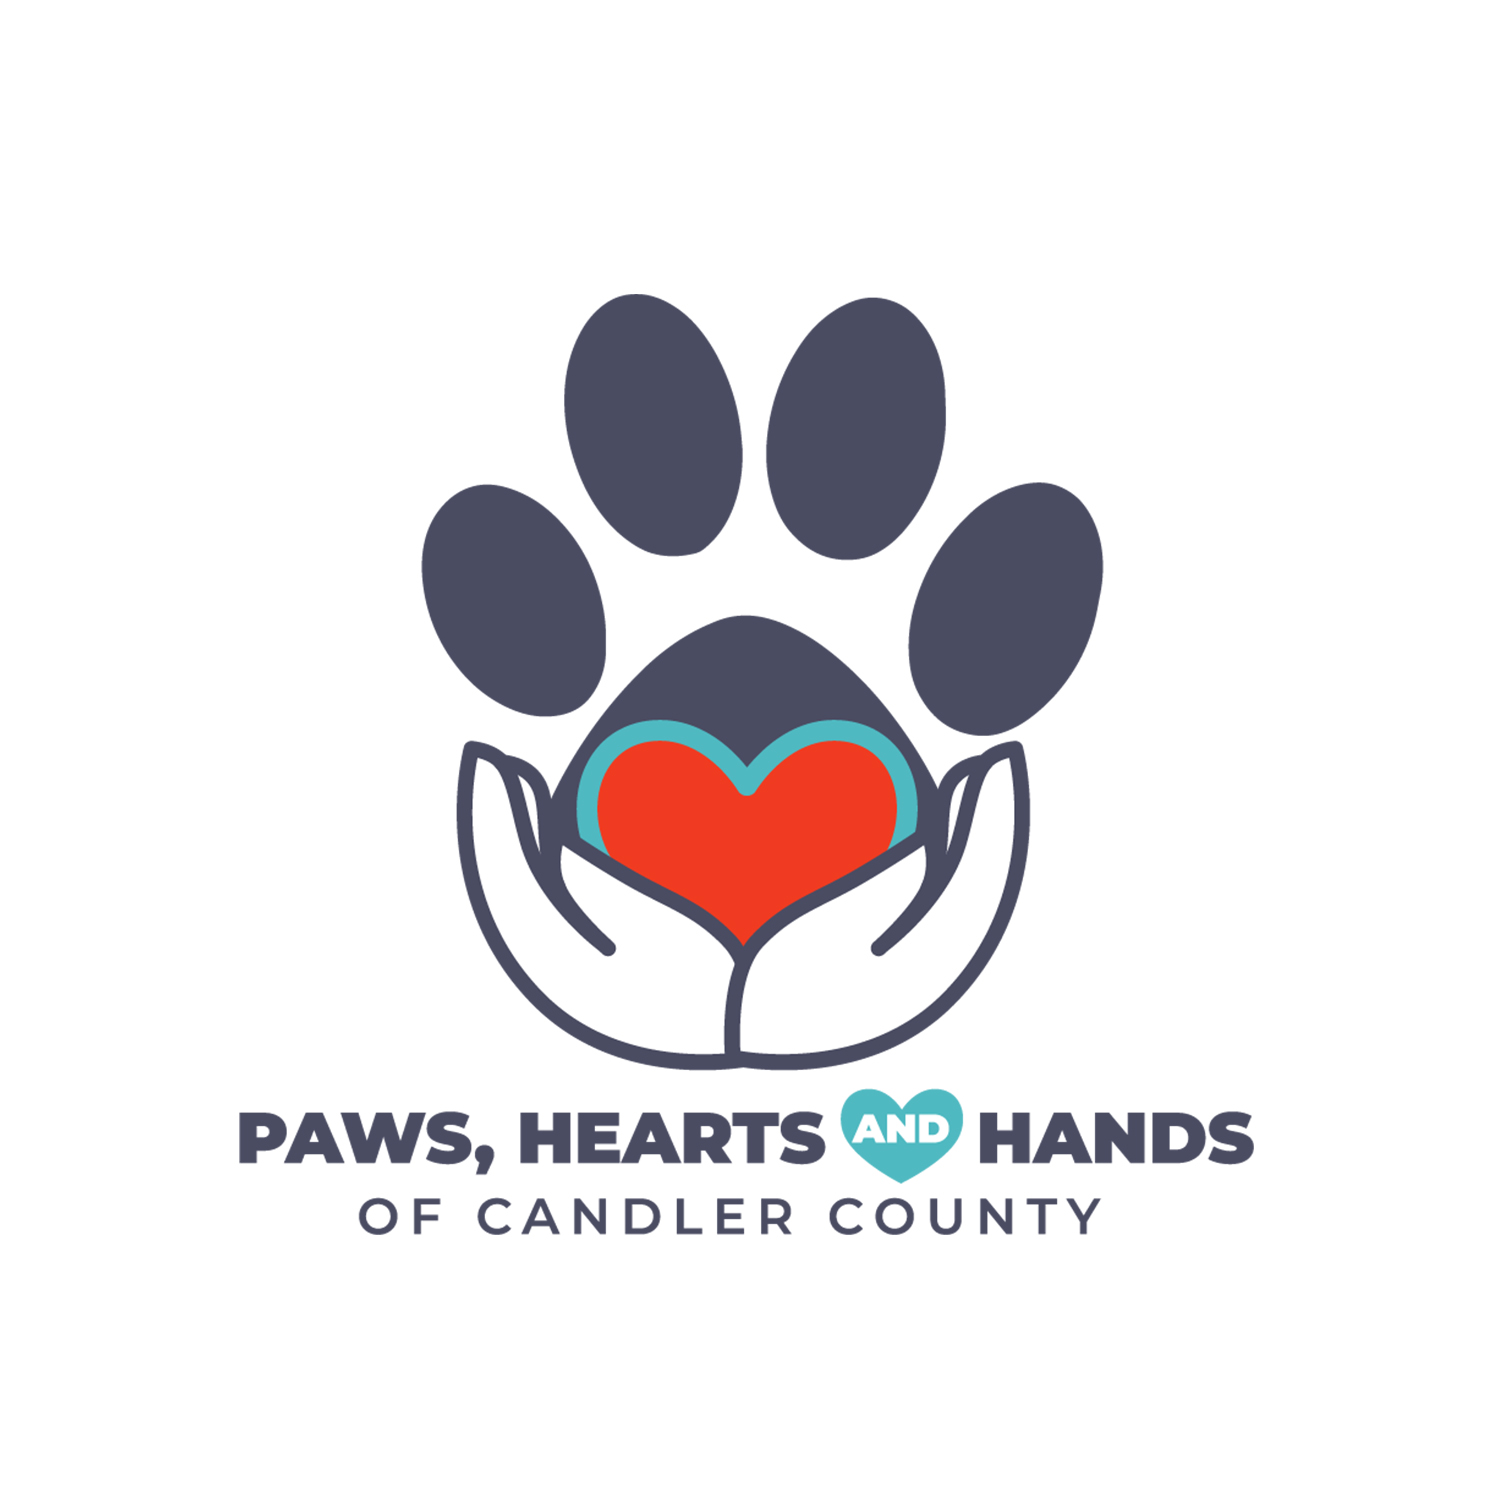 Paws, Hearts and Hands of Candler County